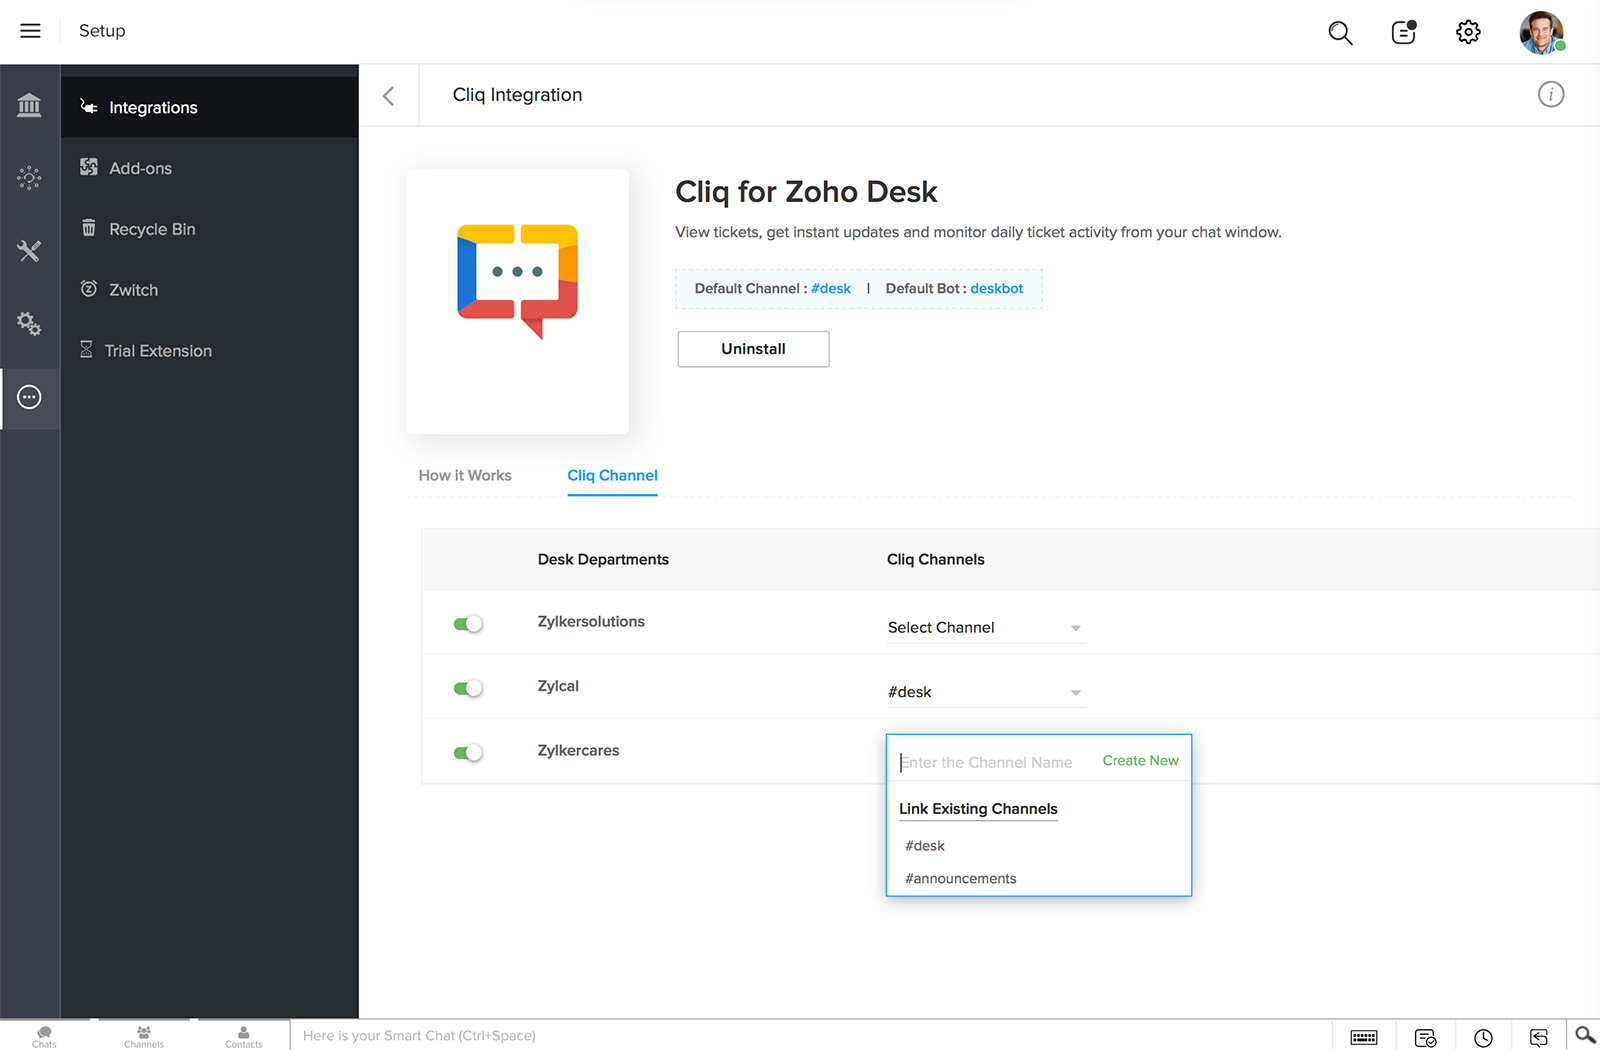 In the desk page, after installing Cliq extension, you can configure channels for your desk departments